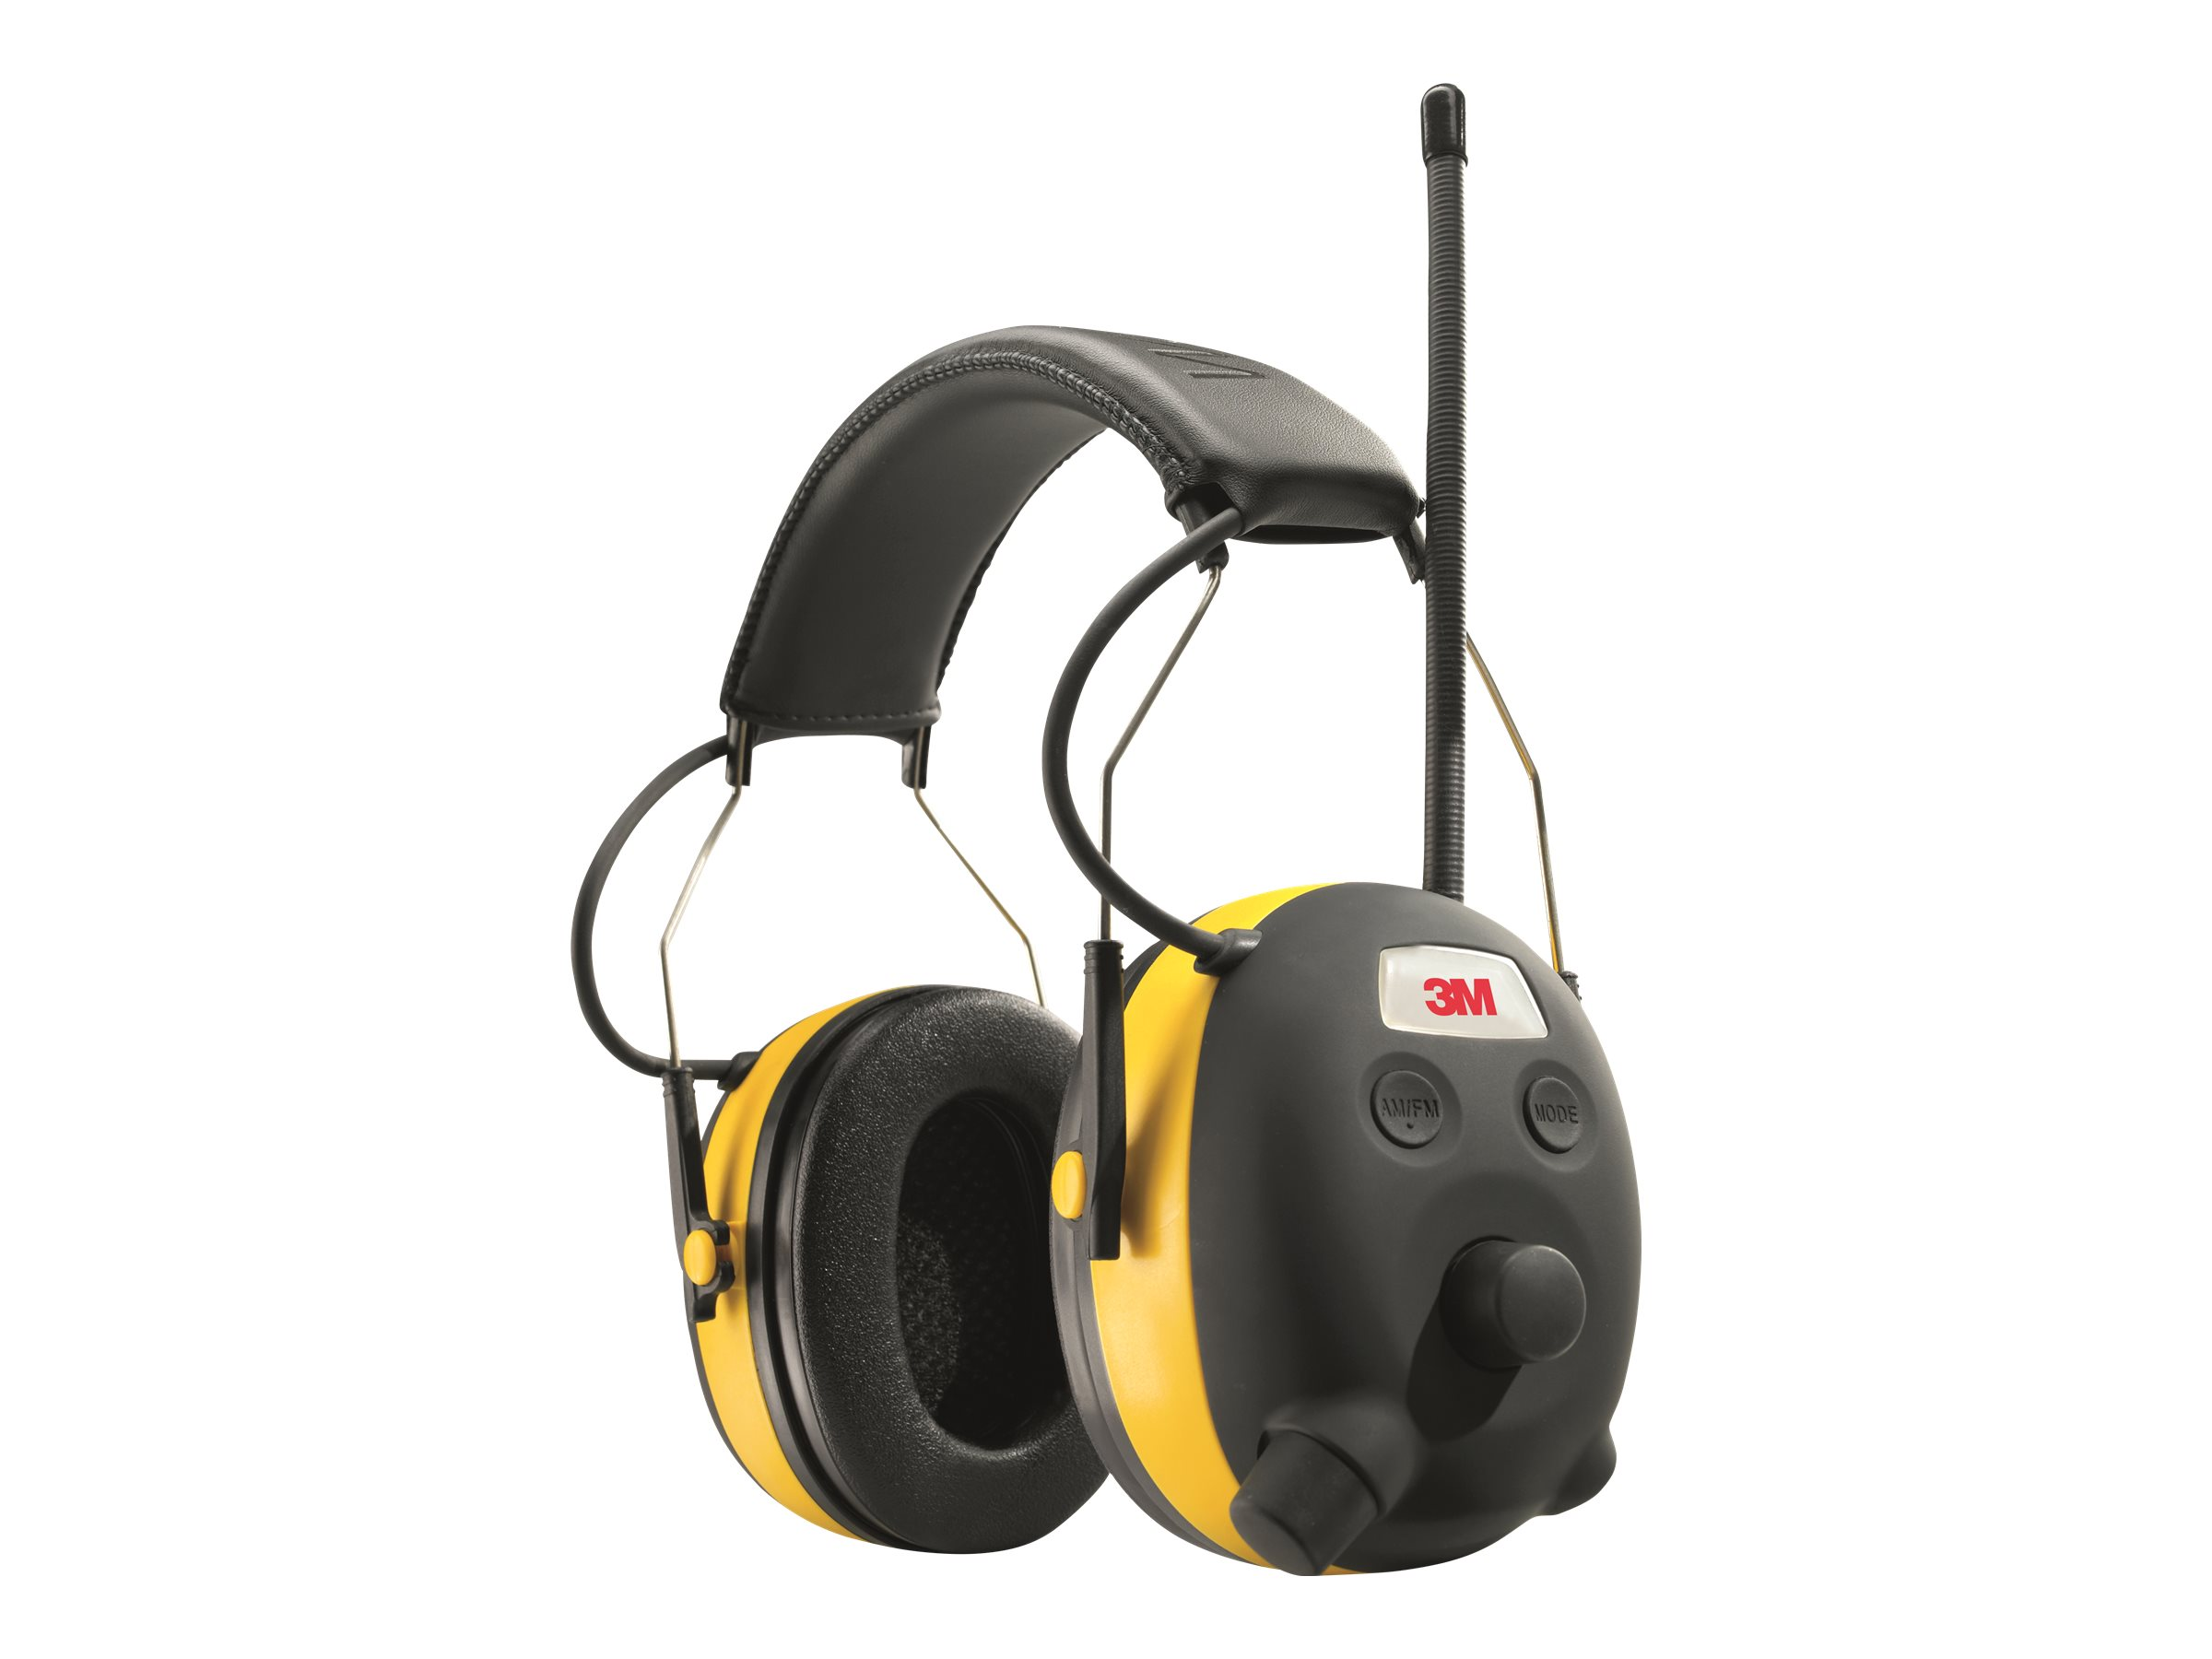 3M WorkTunes Connect Wireless Hearing Protector - headset with radio